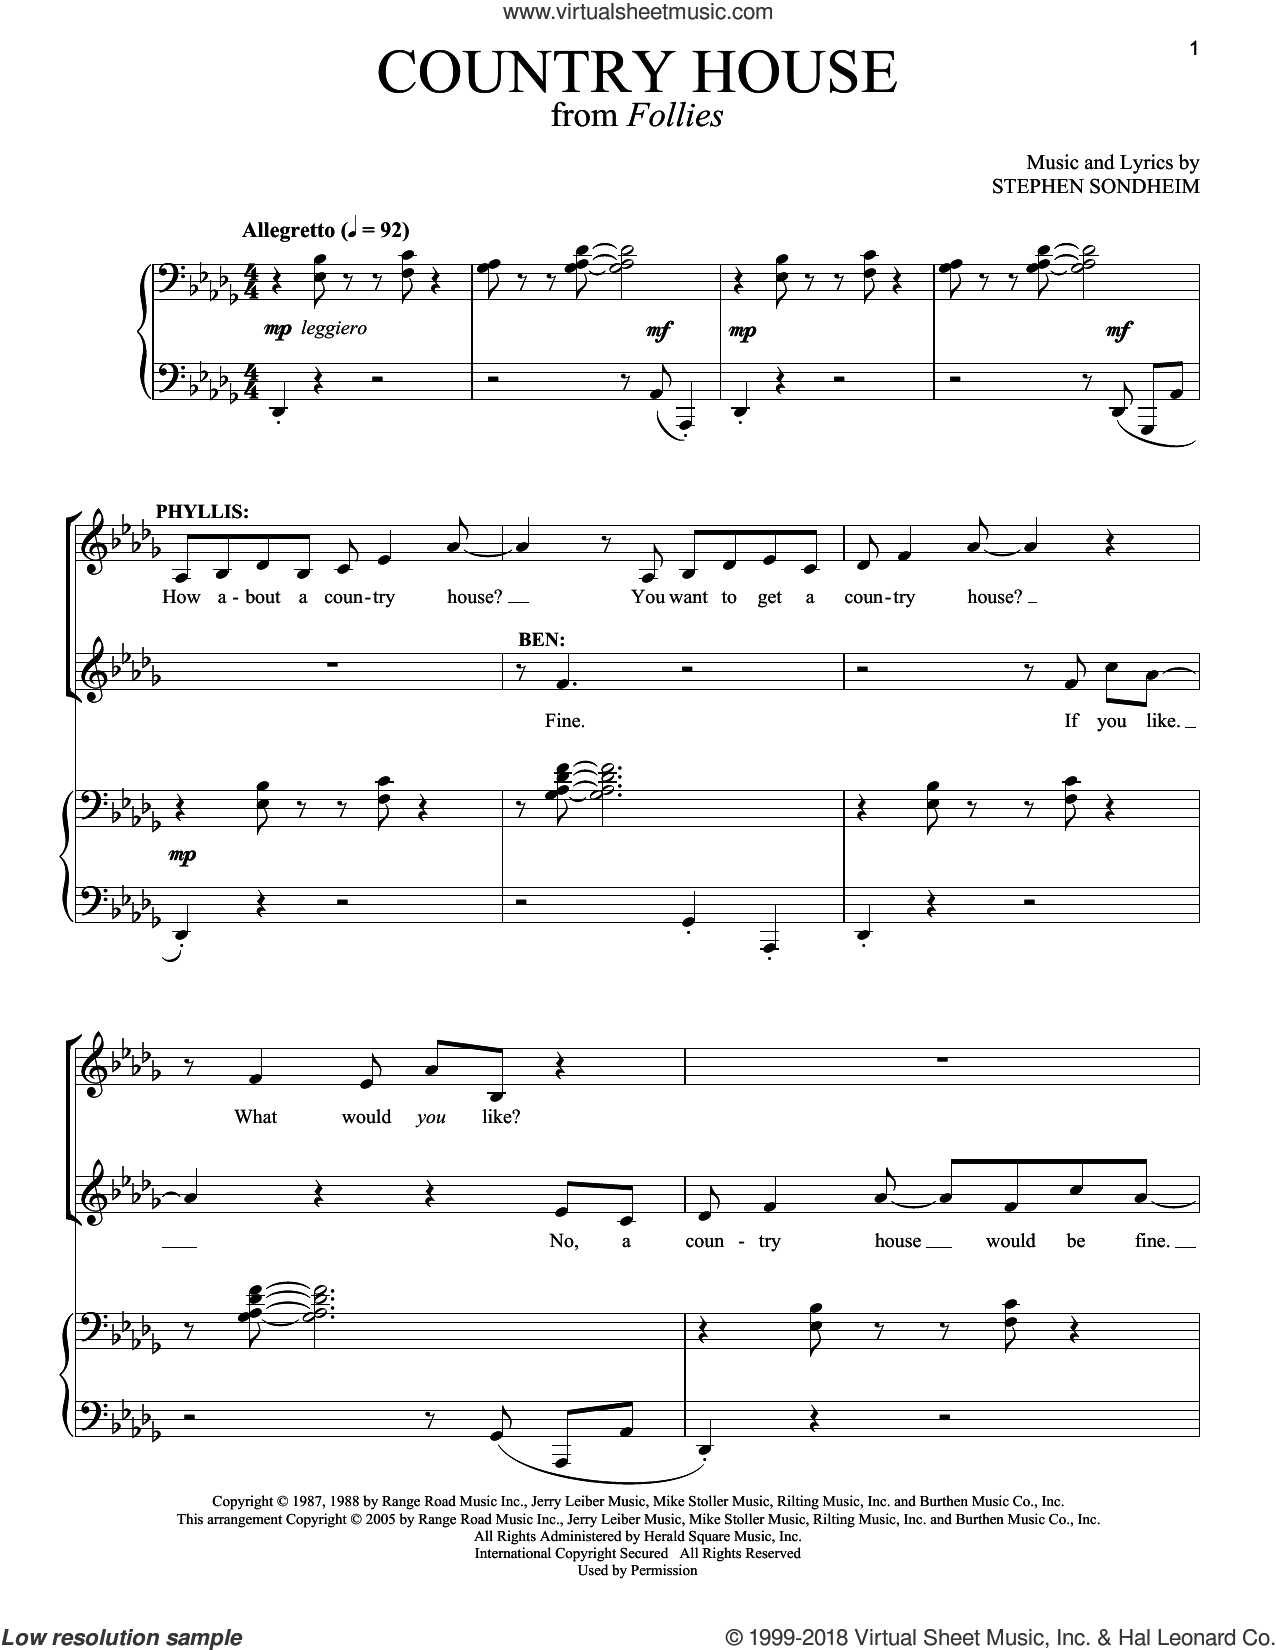 Country House (1987) sheet music for two voices and piano by Stephen Sondheim, intermediate skill level